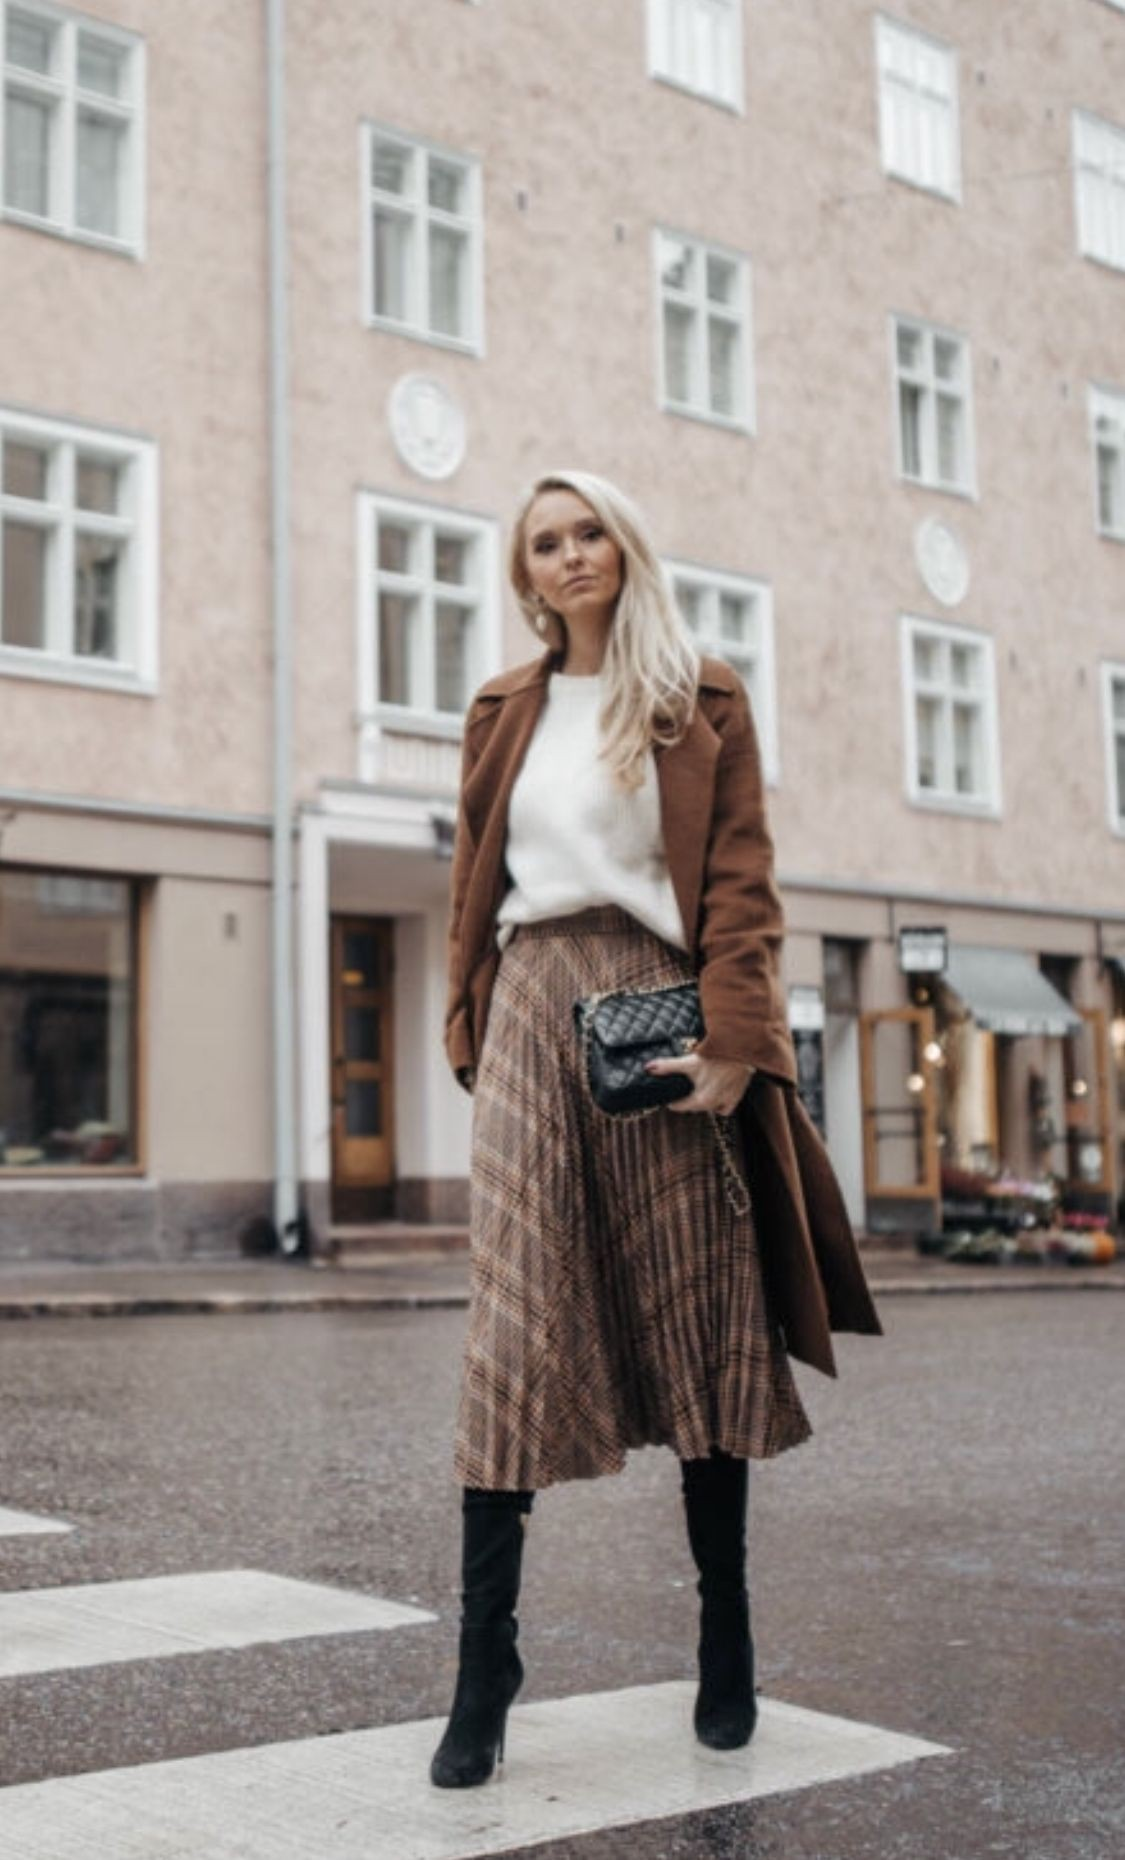 Pleat skirt work outfit, street fashion, a line